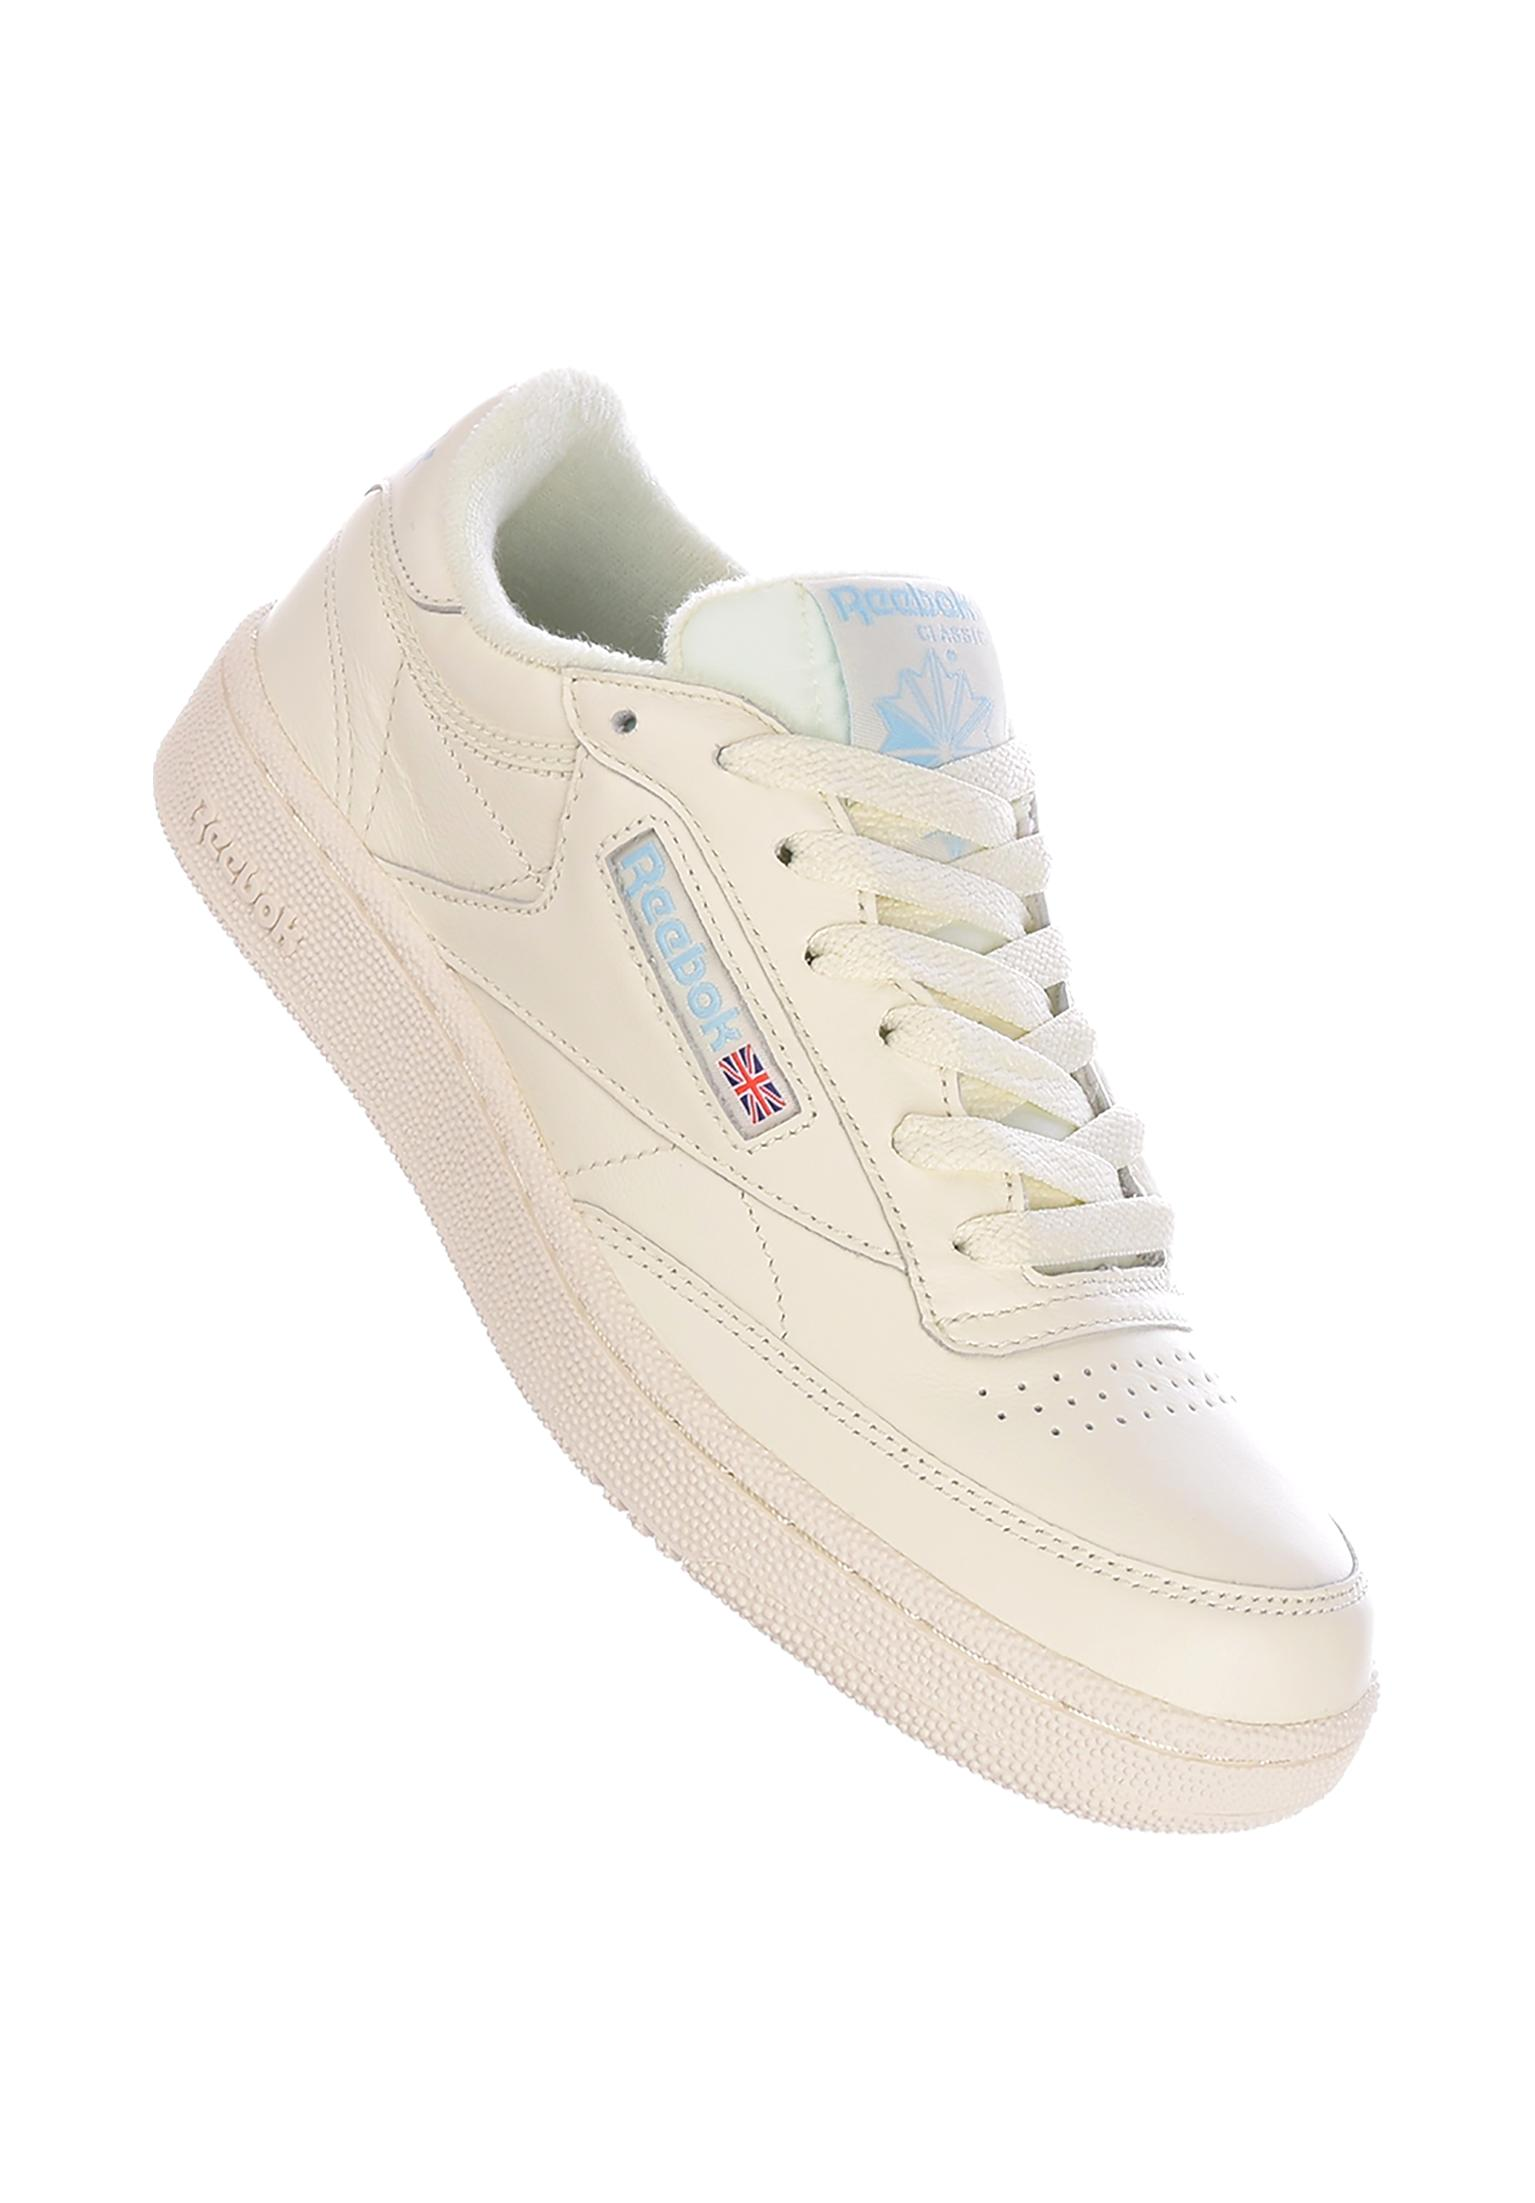 34fd7c4fc77f1 Club C 85 MU Reebok All Shoes in vintage-classic-whitedenim-glow for Women